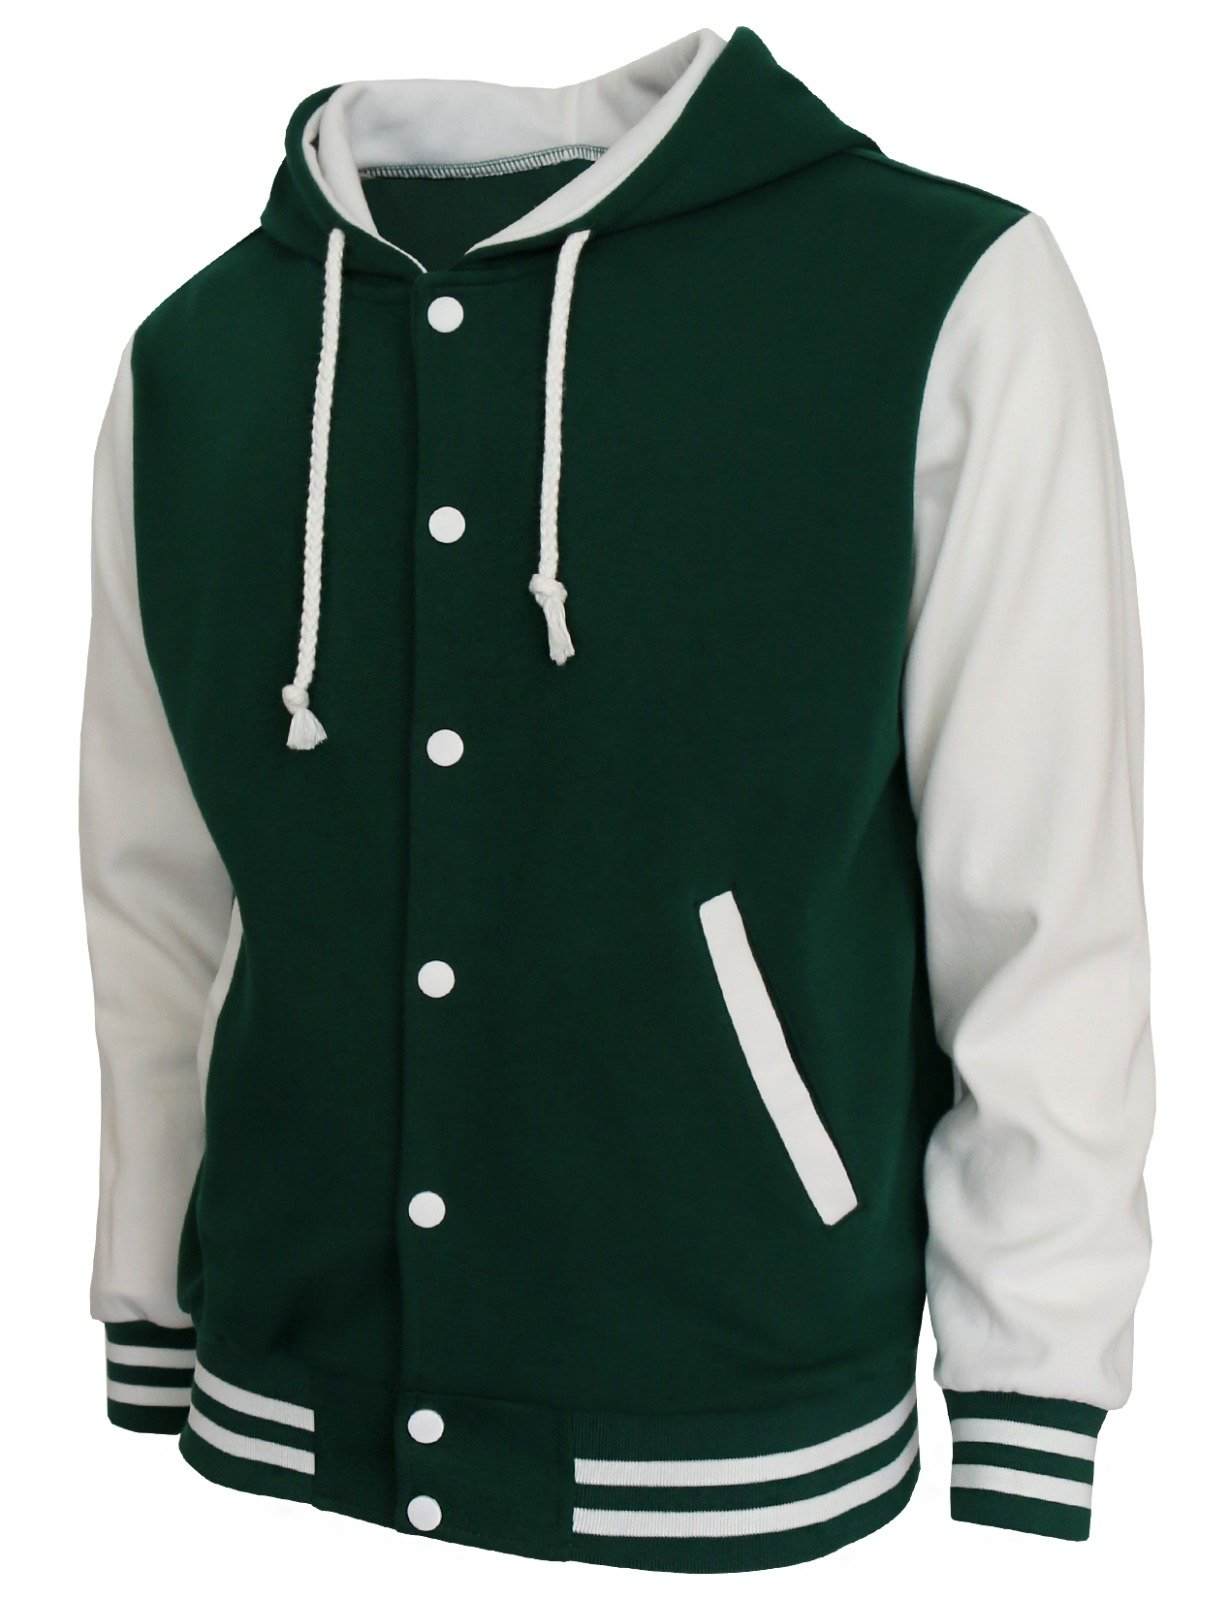 BCPOLO Hoodie Baseball Jacket Varsity Baseball Jacket Cotton Letterman jacket Green-White-XXL